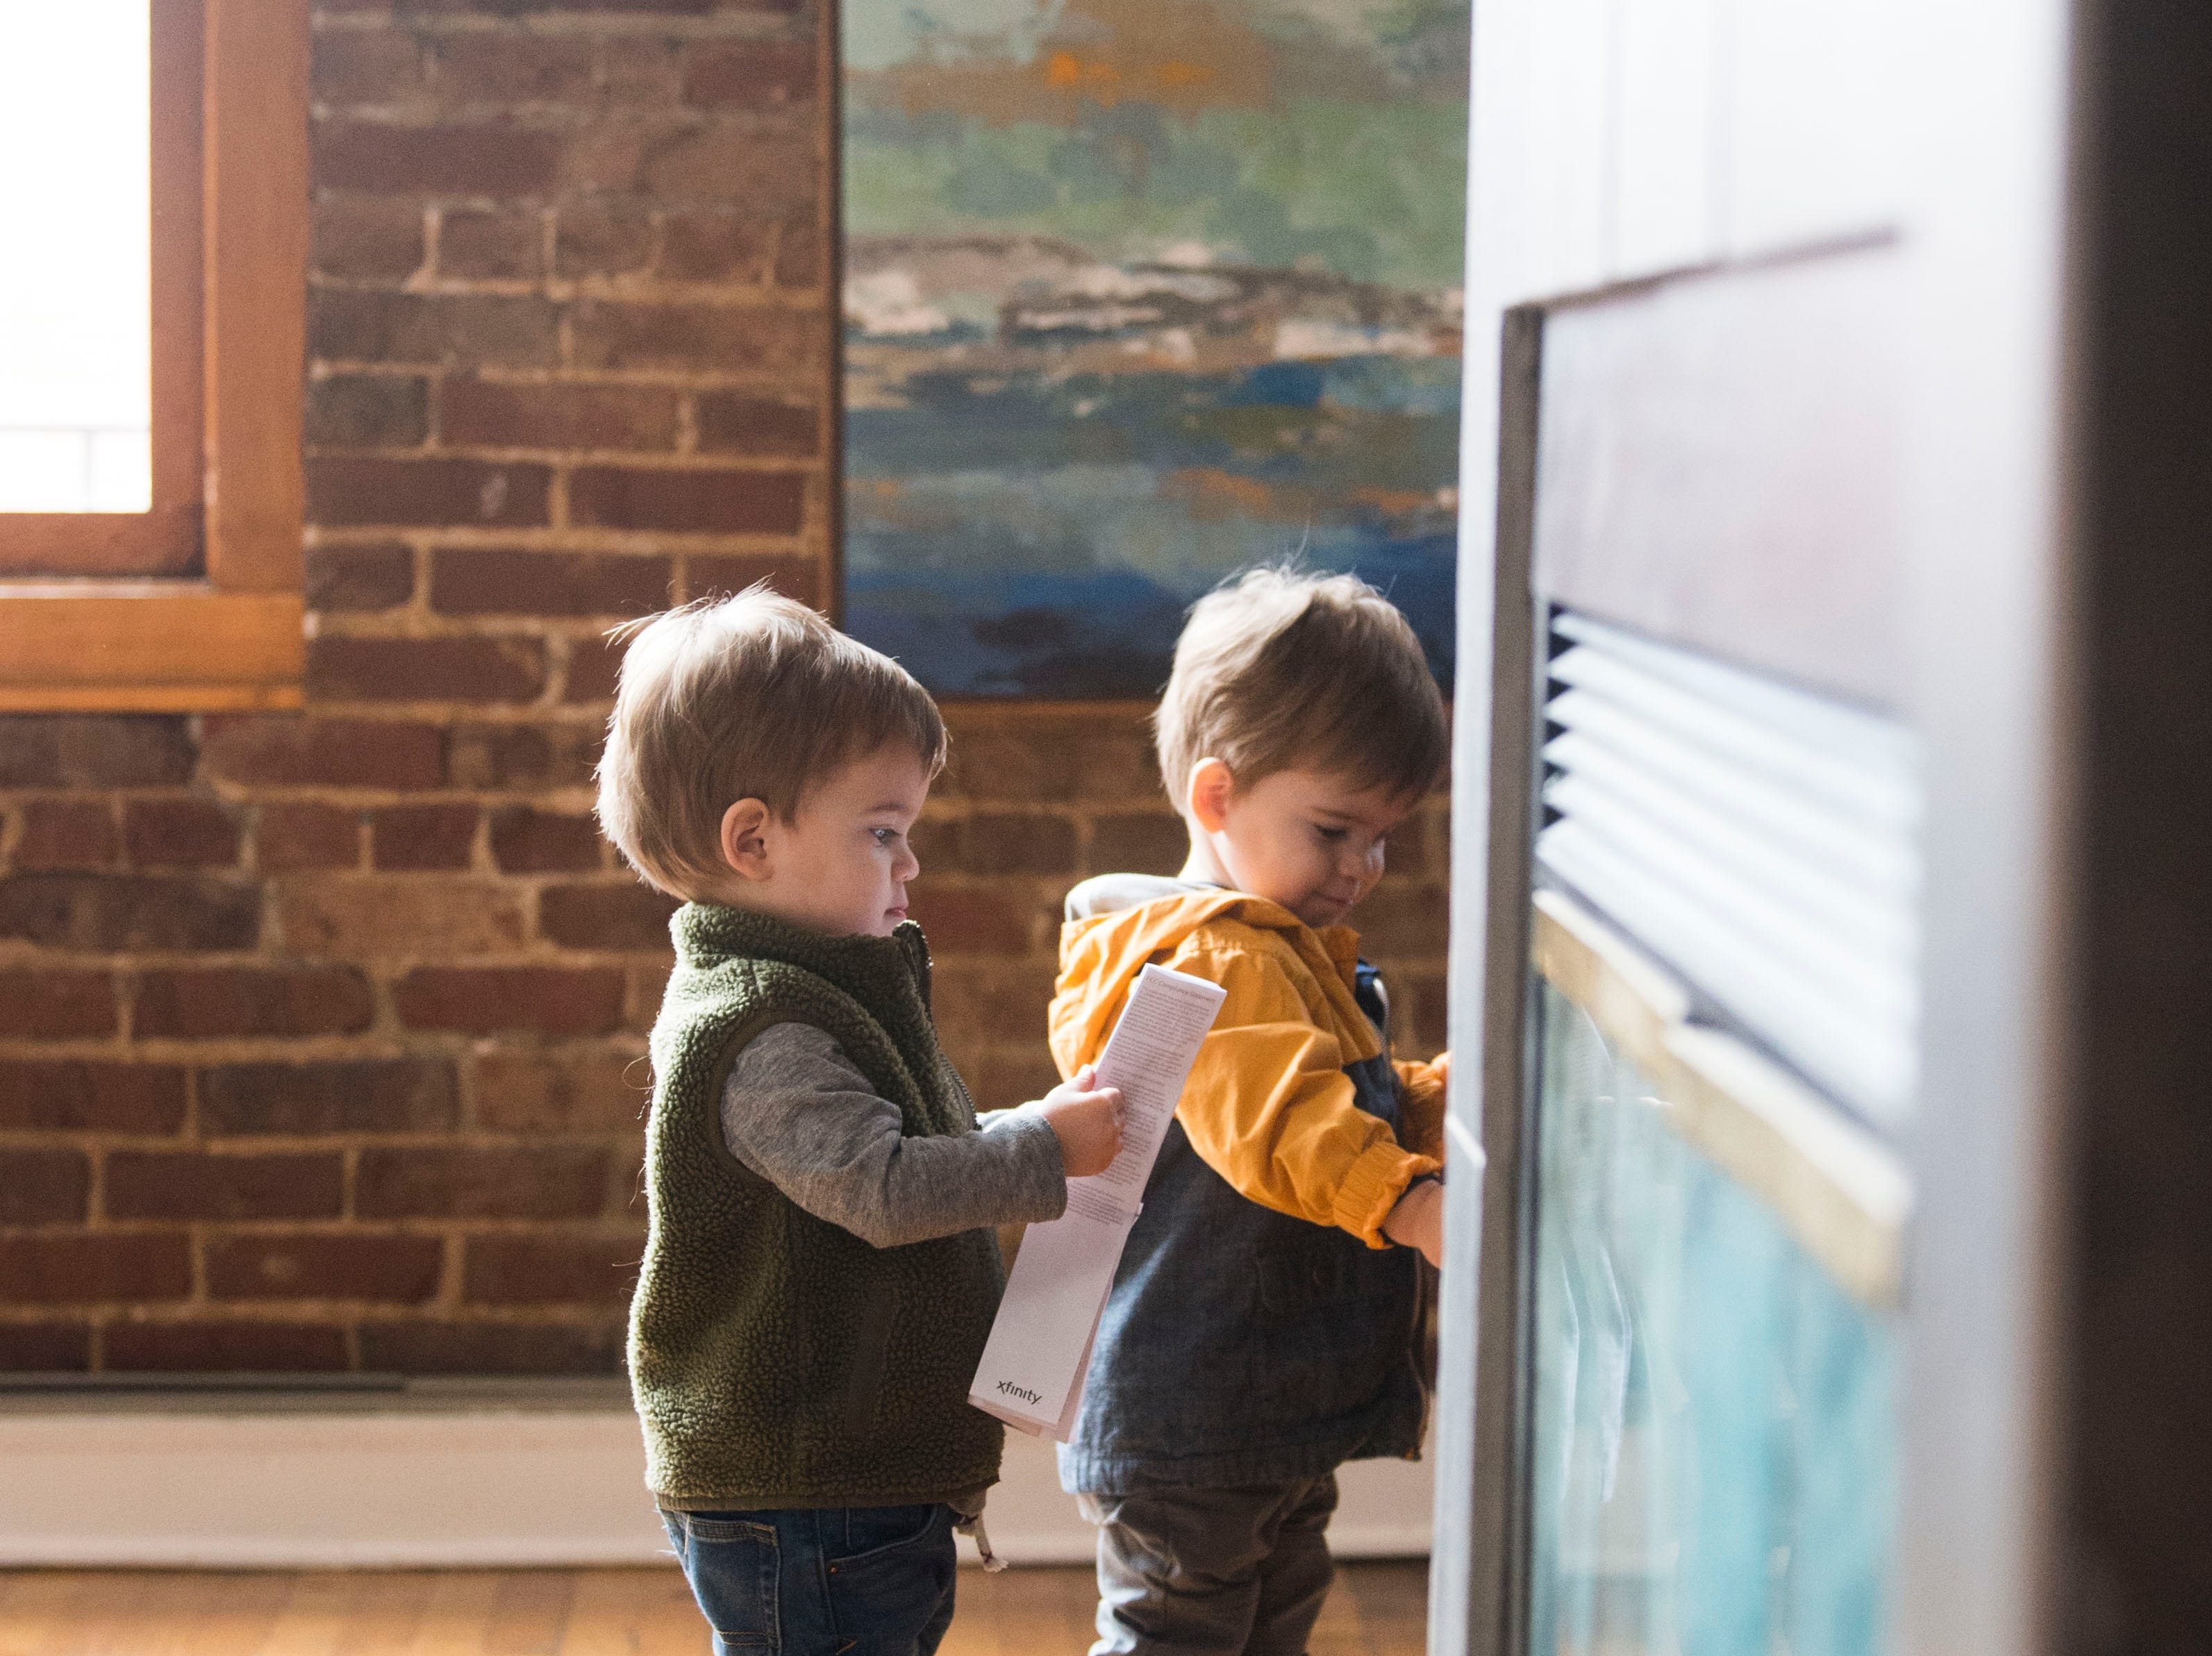 From left 21-month-old twins Duke and Pete Robinson explore one of the 14 short-term rental properties their parents Suzanne and Dylan Robinson manage in their company Knox Staytion, in Old City Tuesday, Feb. 5, 2019.